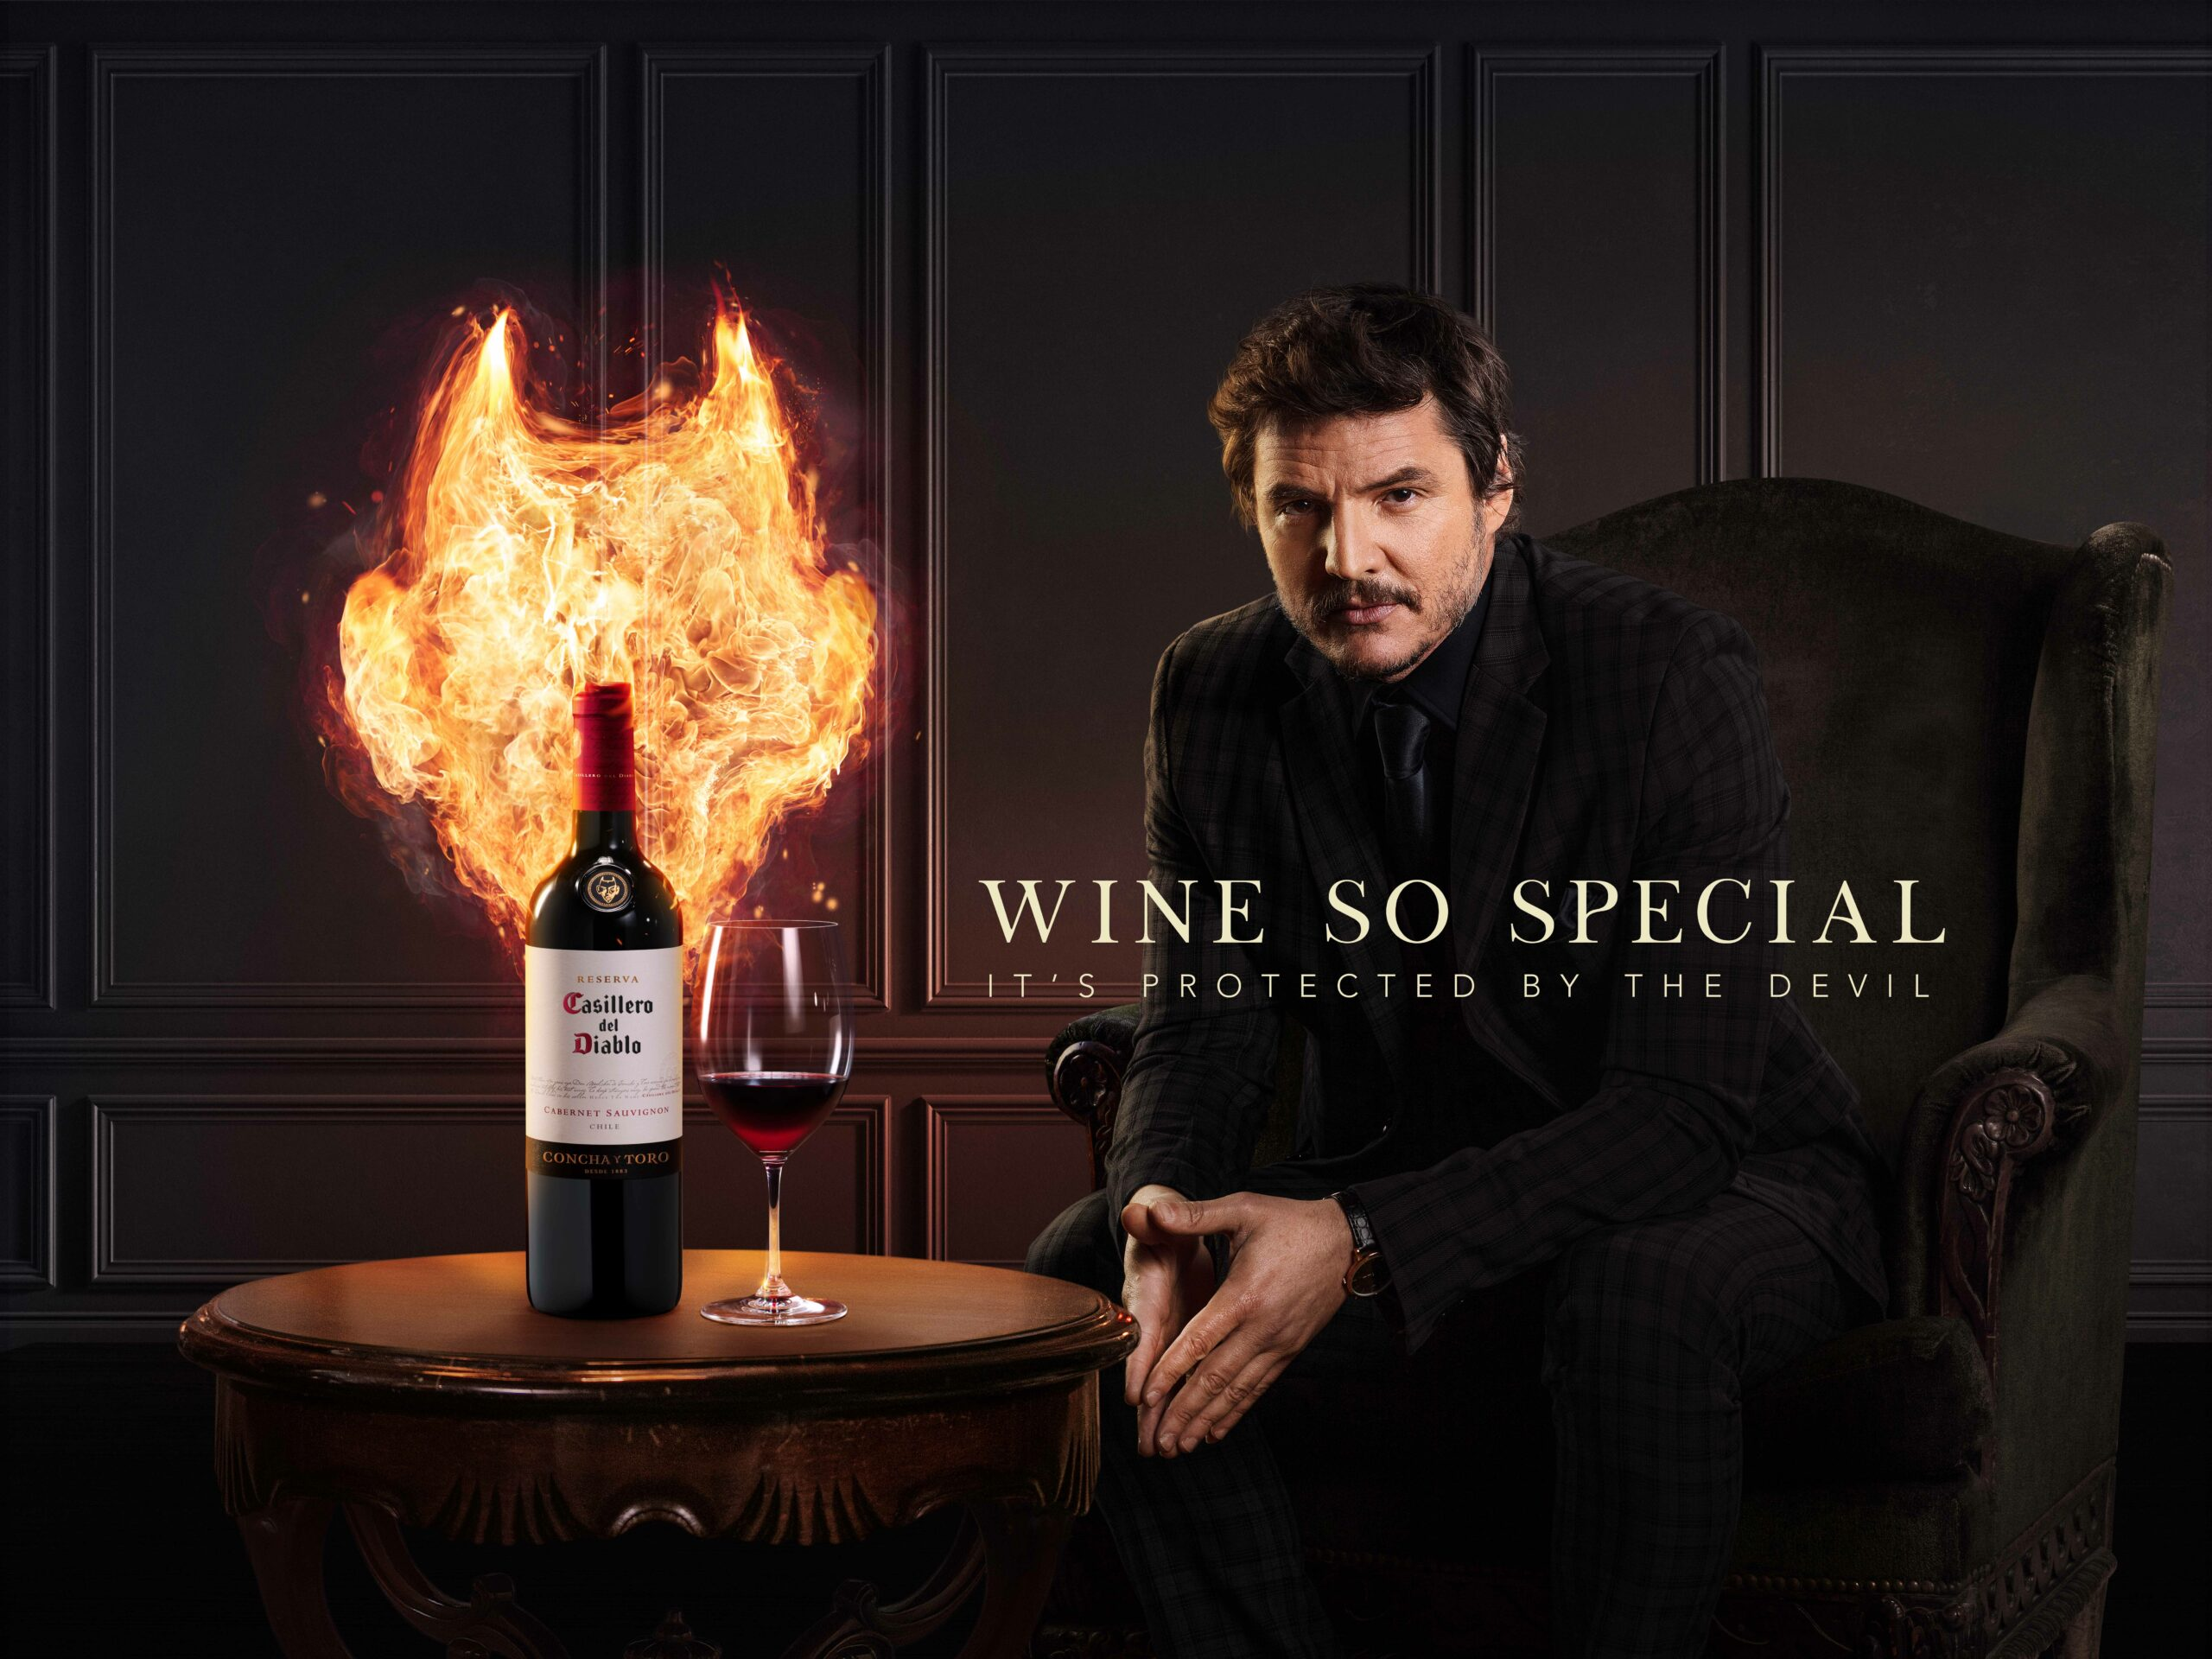 """Casillero del Diablo launches latest """"The Wine Legend"""" video, starring Pedro Pascal as the """"World's greatest thief"""""""